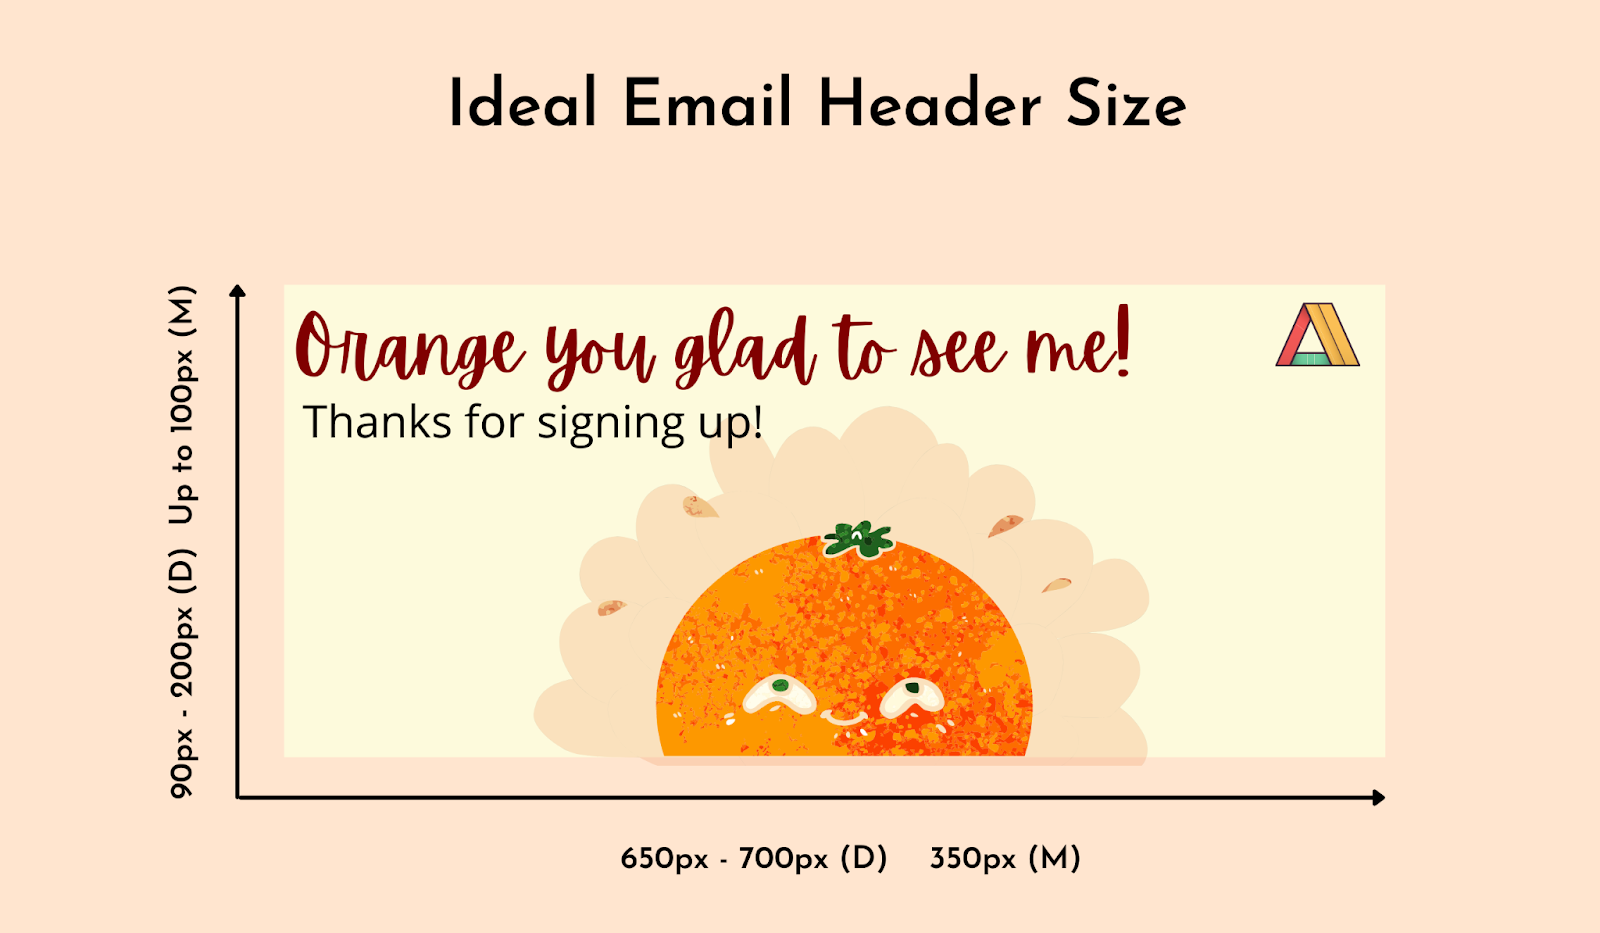 Ideal email header size